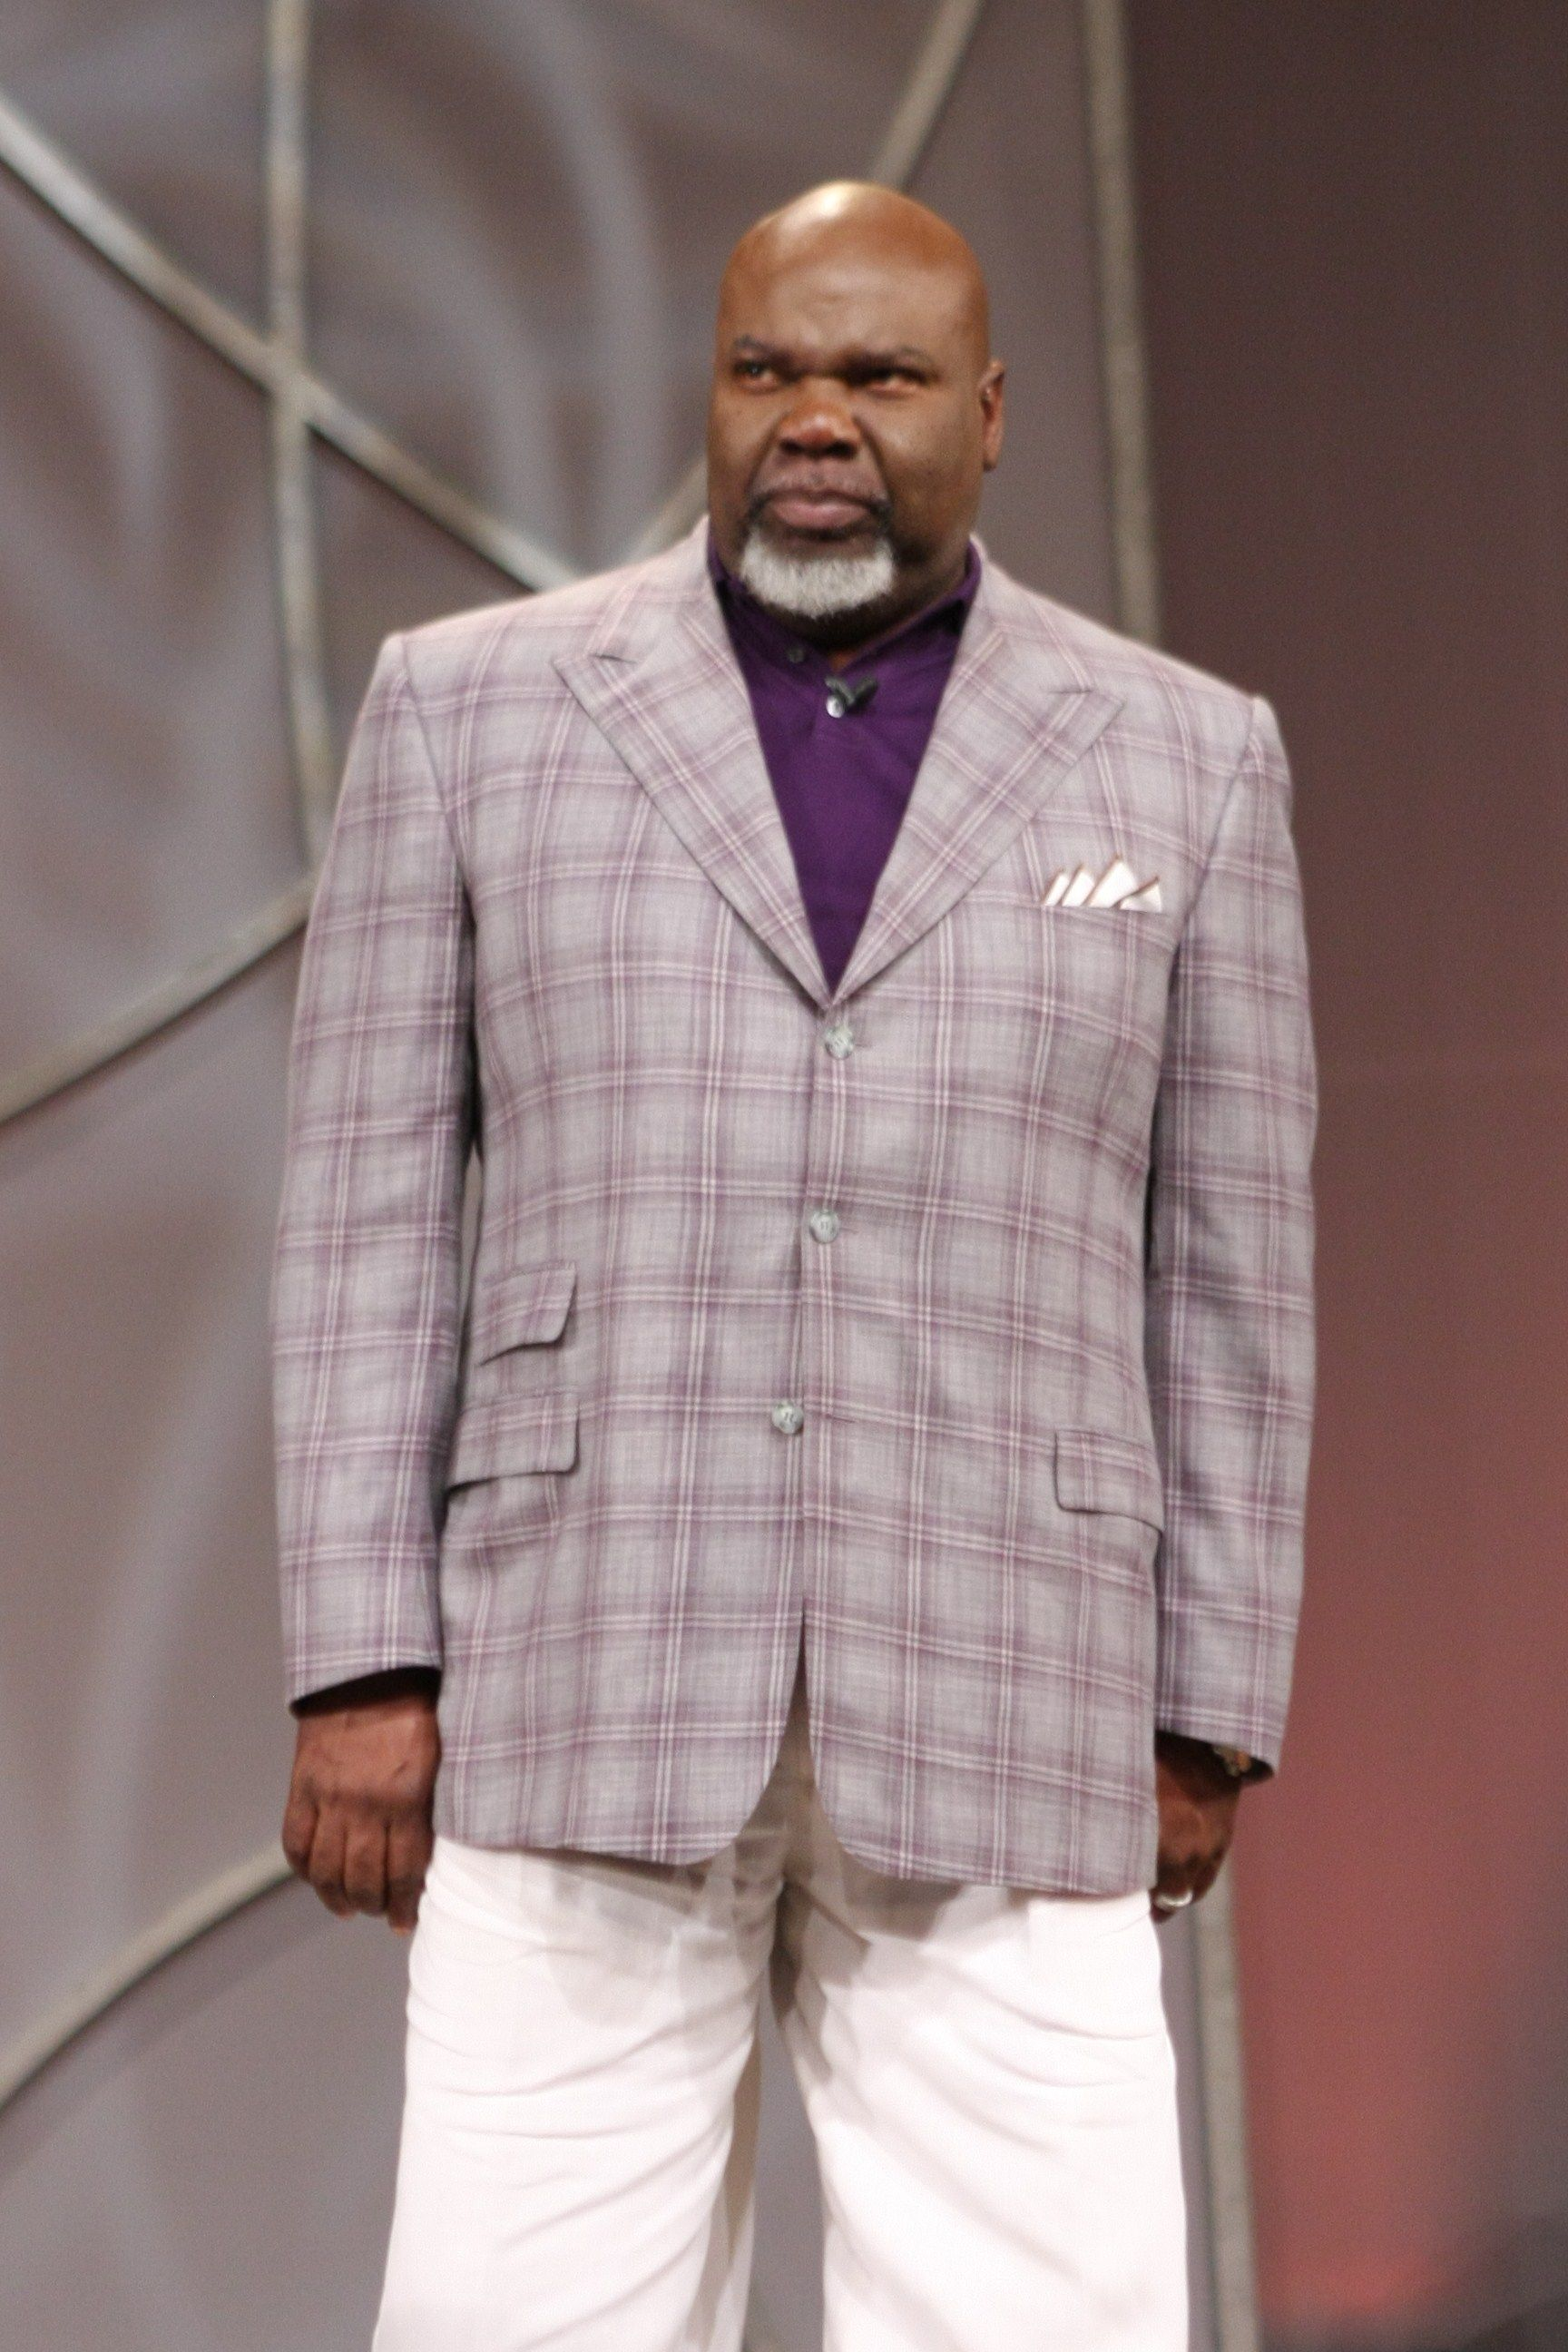 Last night's message from Bishop Jakes at ManPower Conference is available now in Instant MP3 format - Get it here! - https://store.tdjakes.org/p-2580-mp-2012-bishop-td-jakes-thursday-mp3.aspx